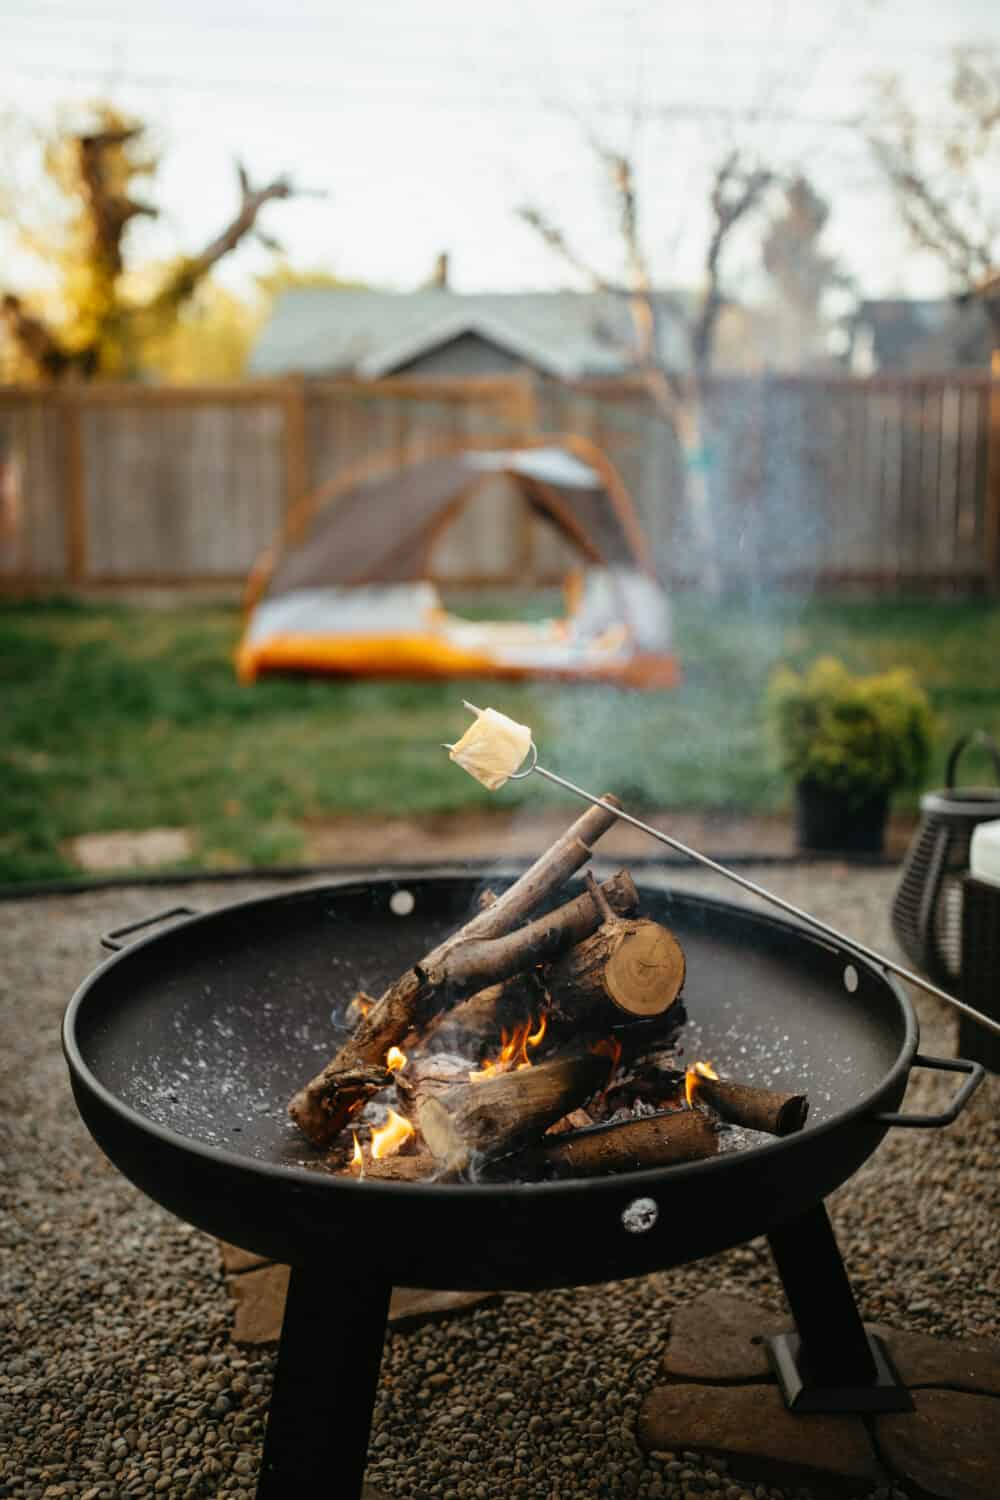 Roasting S'more around simple fire pit in backyard - TheMandagies.com